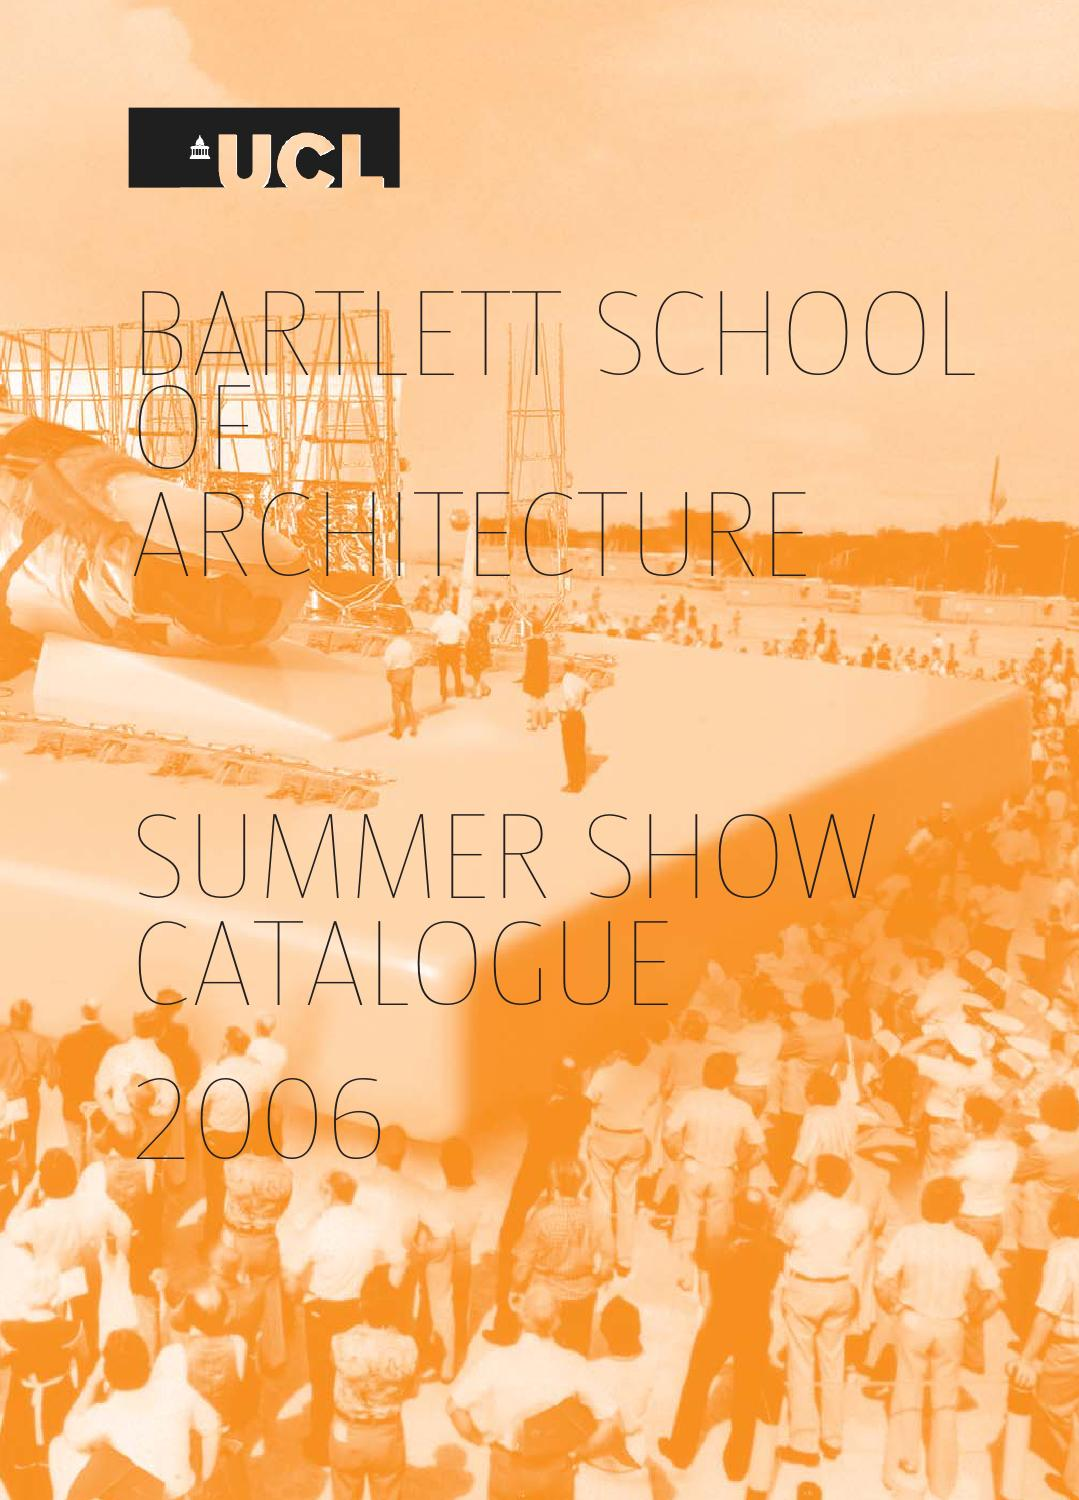 Bartlett School Of Architecture Summer Show Catalogue 2006